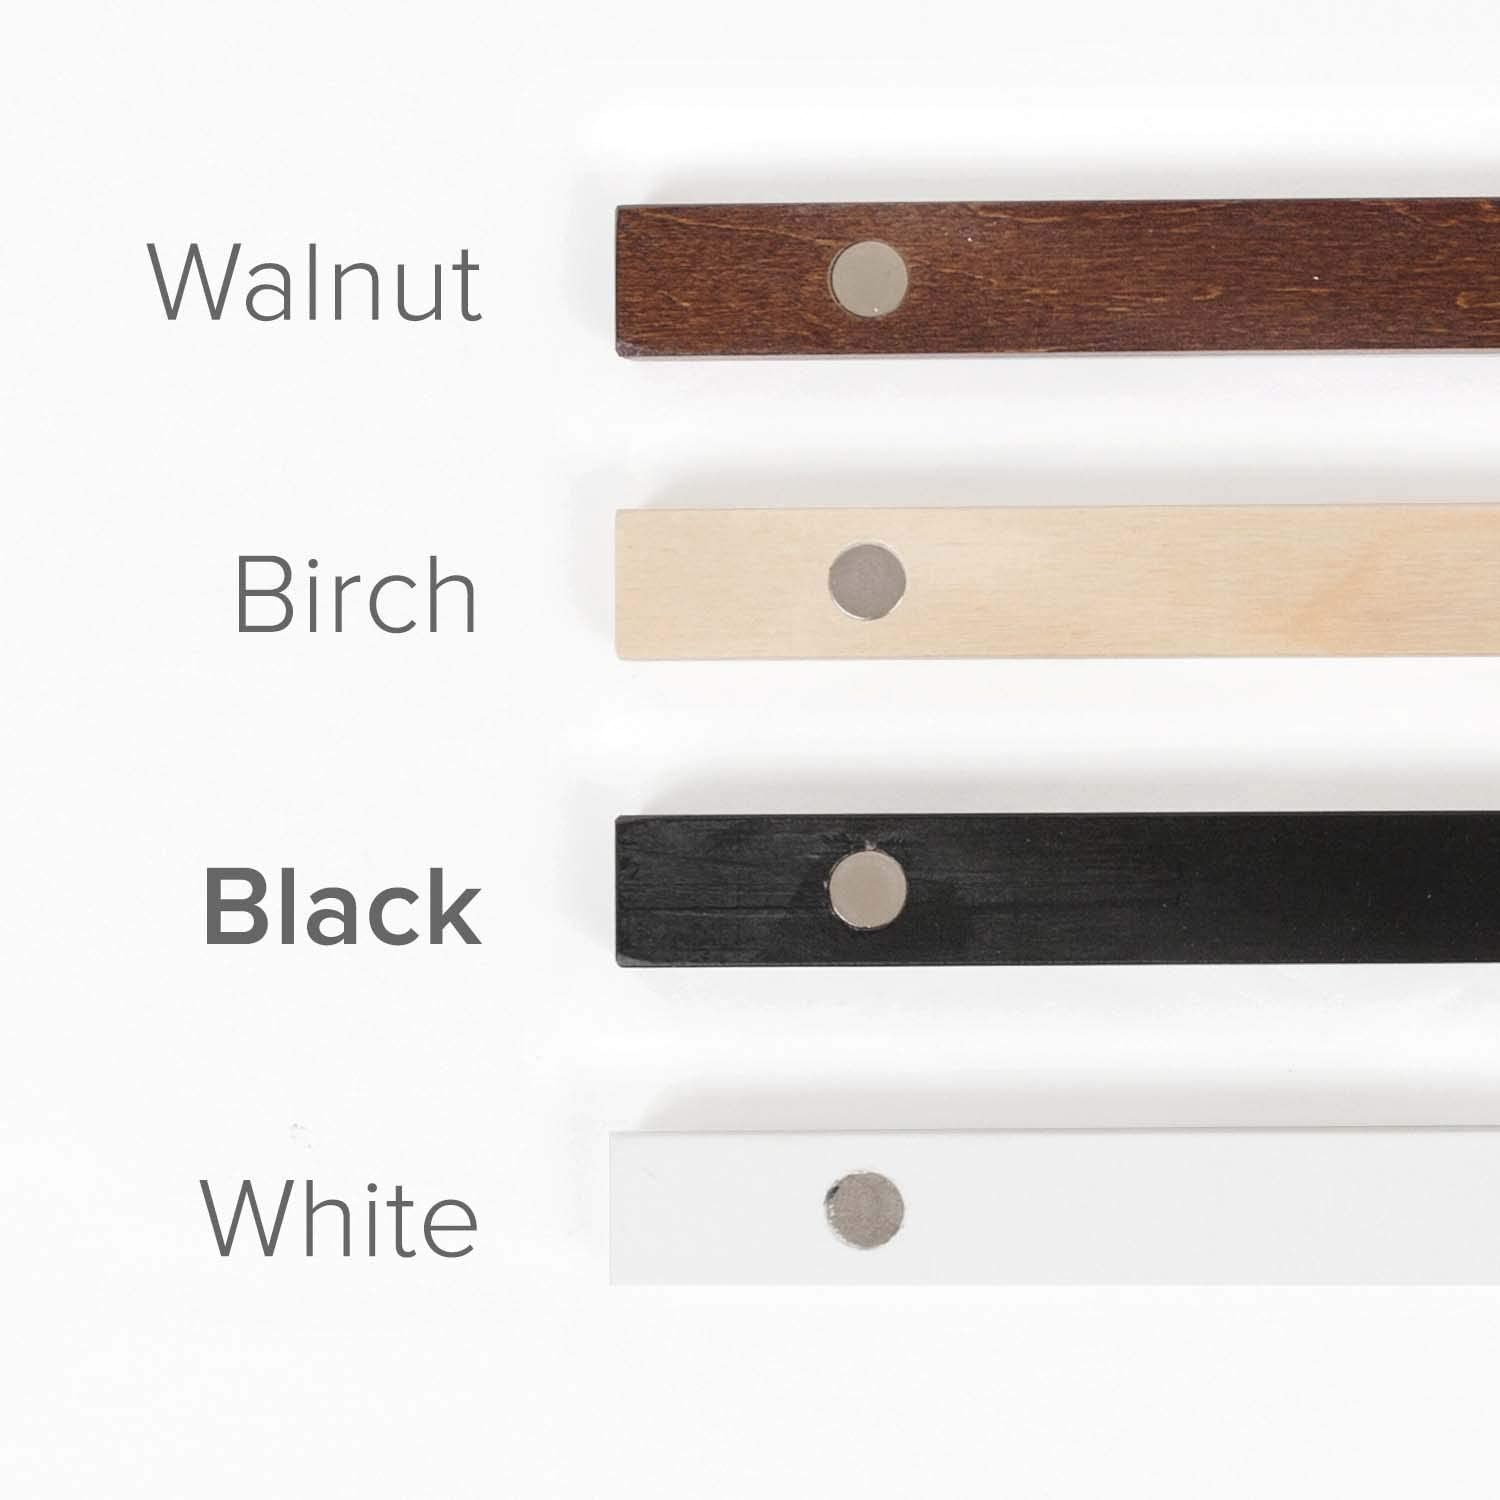 Stiicks 25 Wide Magnetic Poster Frame Hanger in Walnut Premium Plywood and Magnets Strong Enough to Hang Any Length